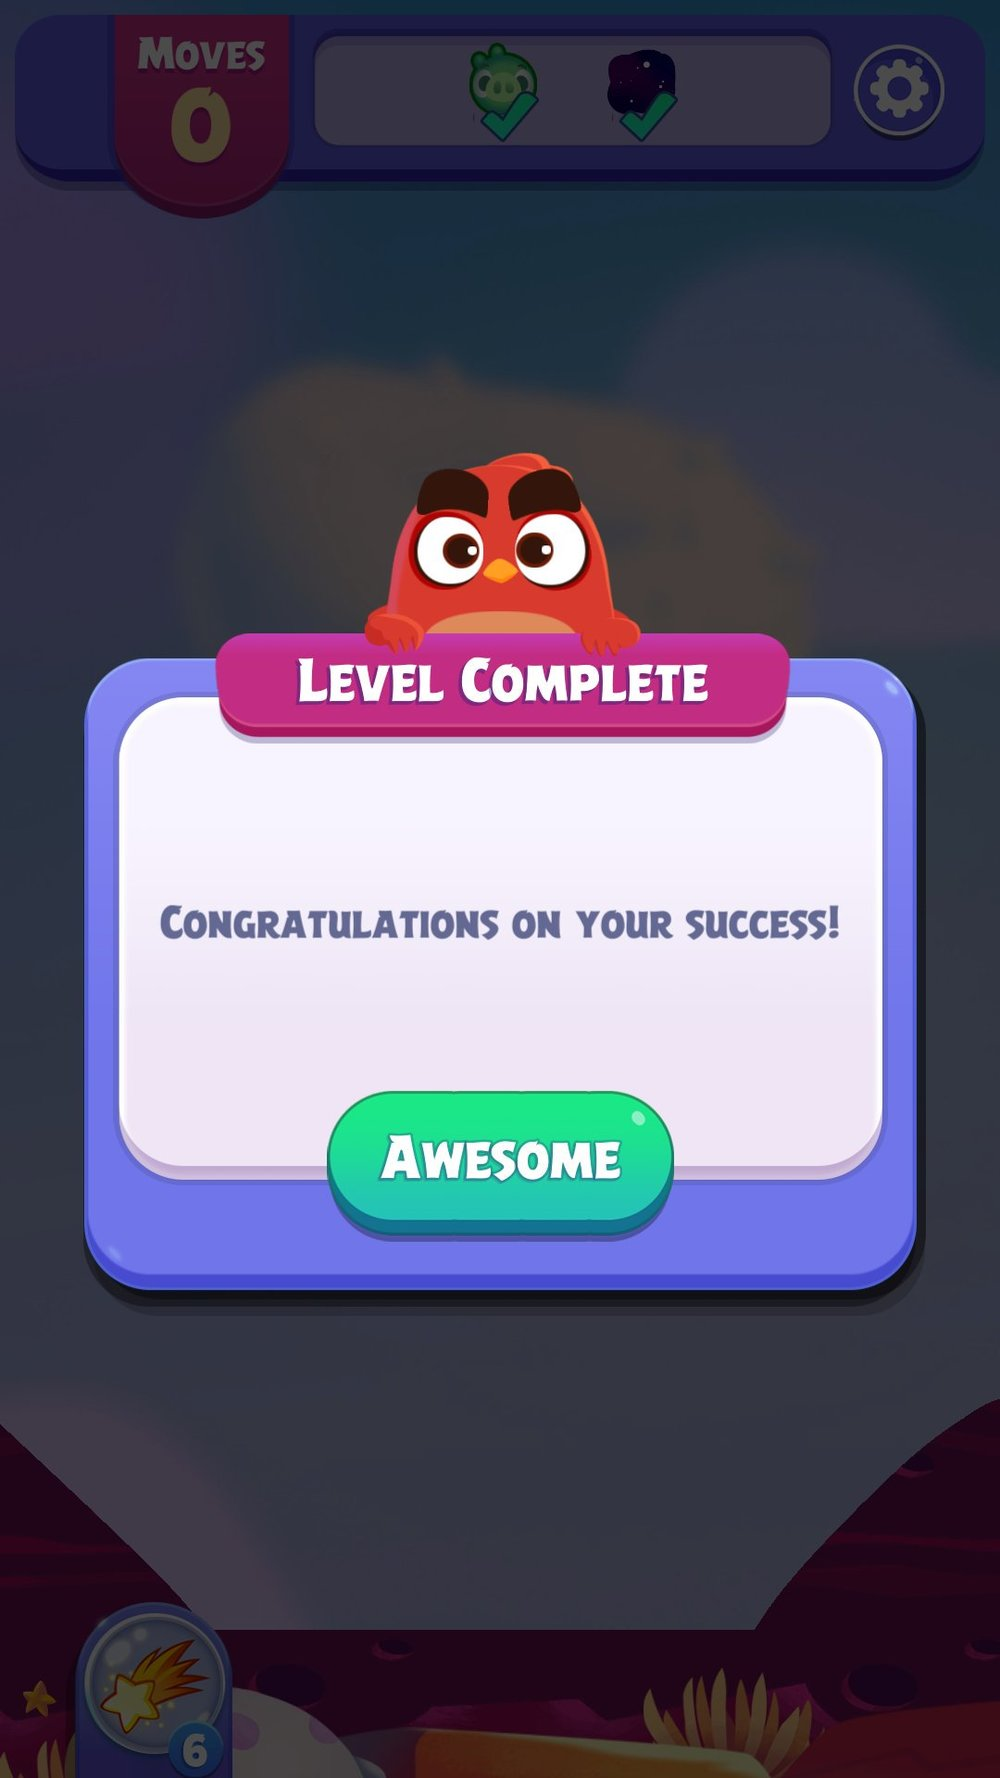 The Level Complete message is very cute